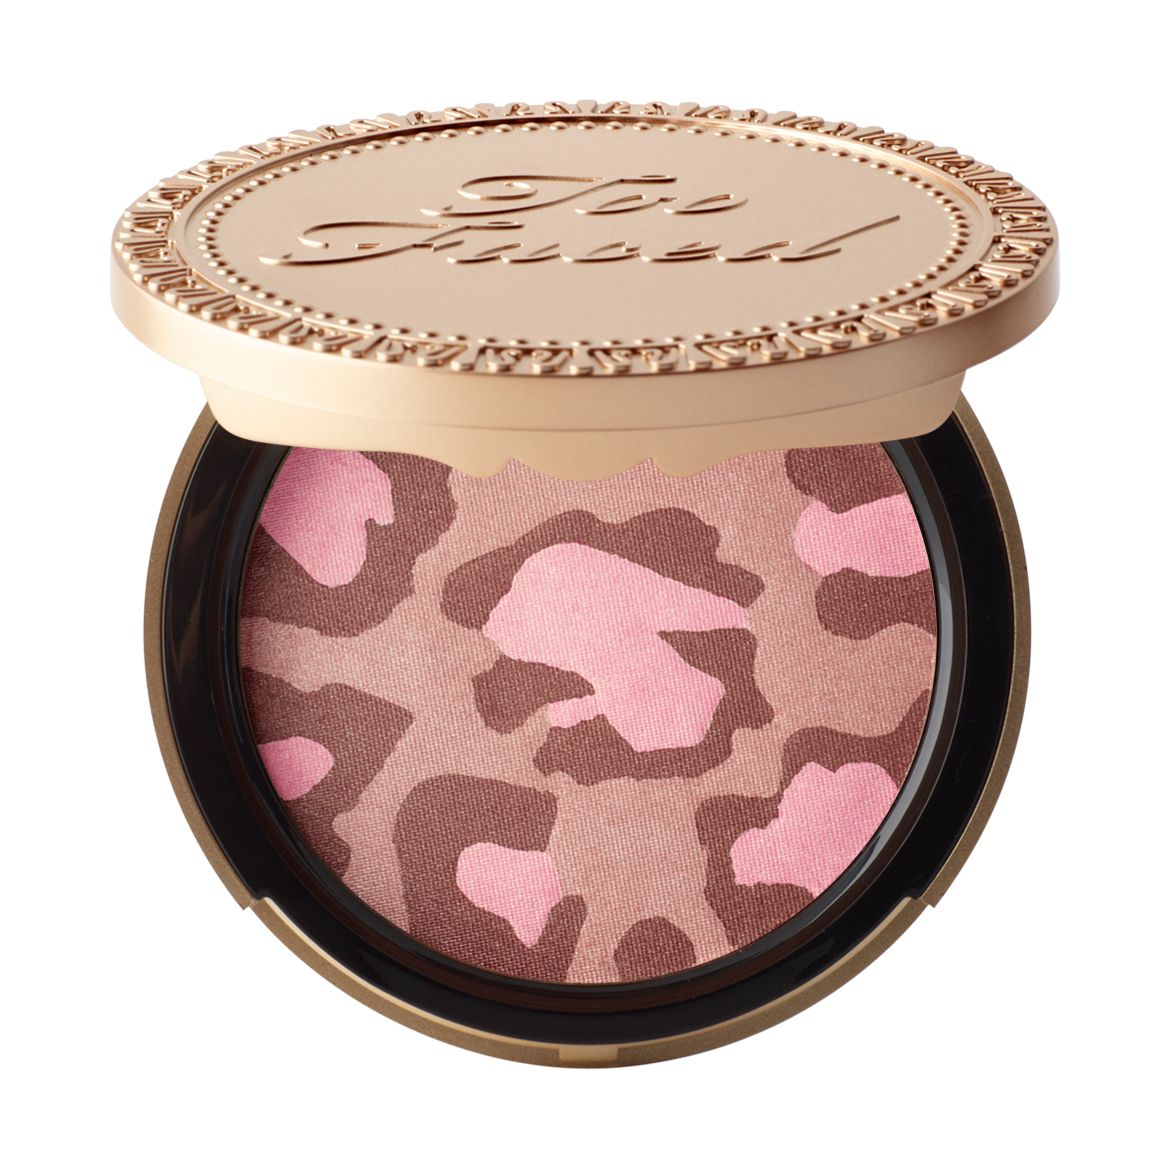 Looking for a pink bronzer? Combining gorgeous shades of golden bronzes, gilded pinks and neutral fawns, our Pink Leopard blushing bronzer creates a glorious all-over glow for all skin tones.